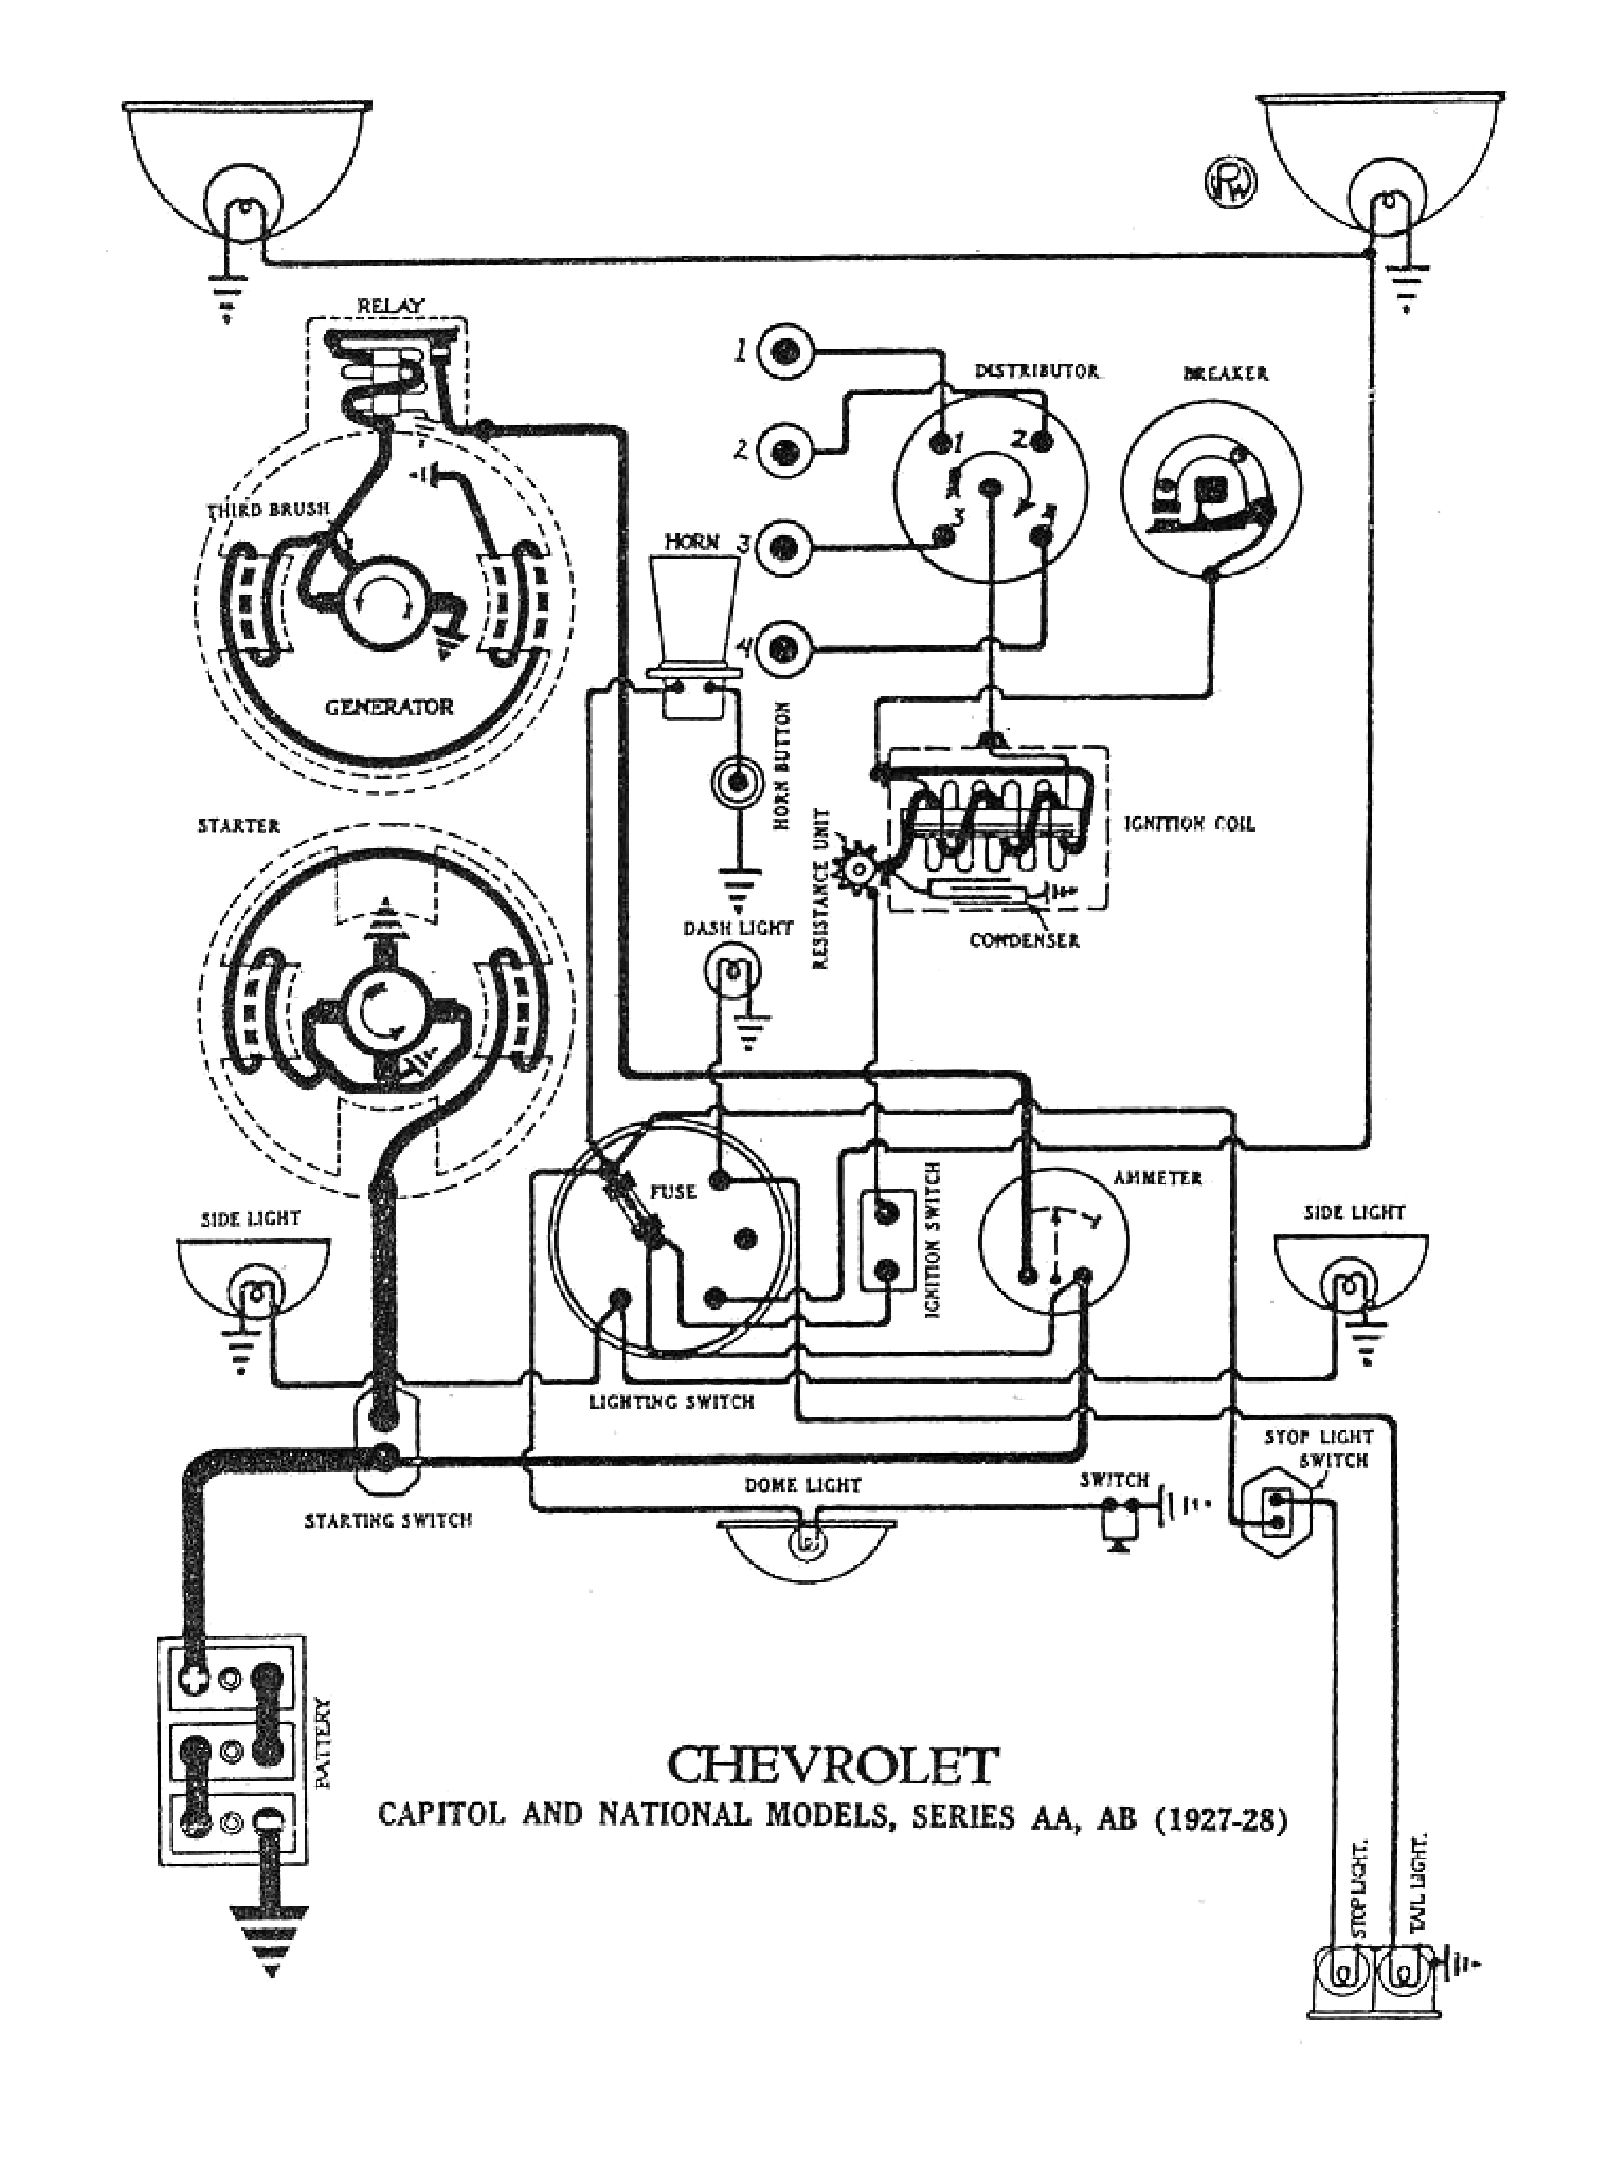 1975 corvette firing order diagram